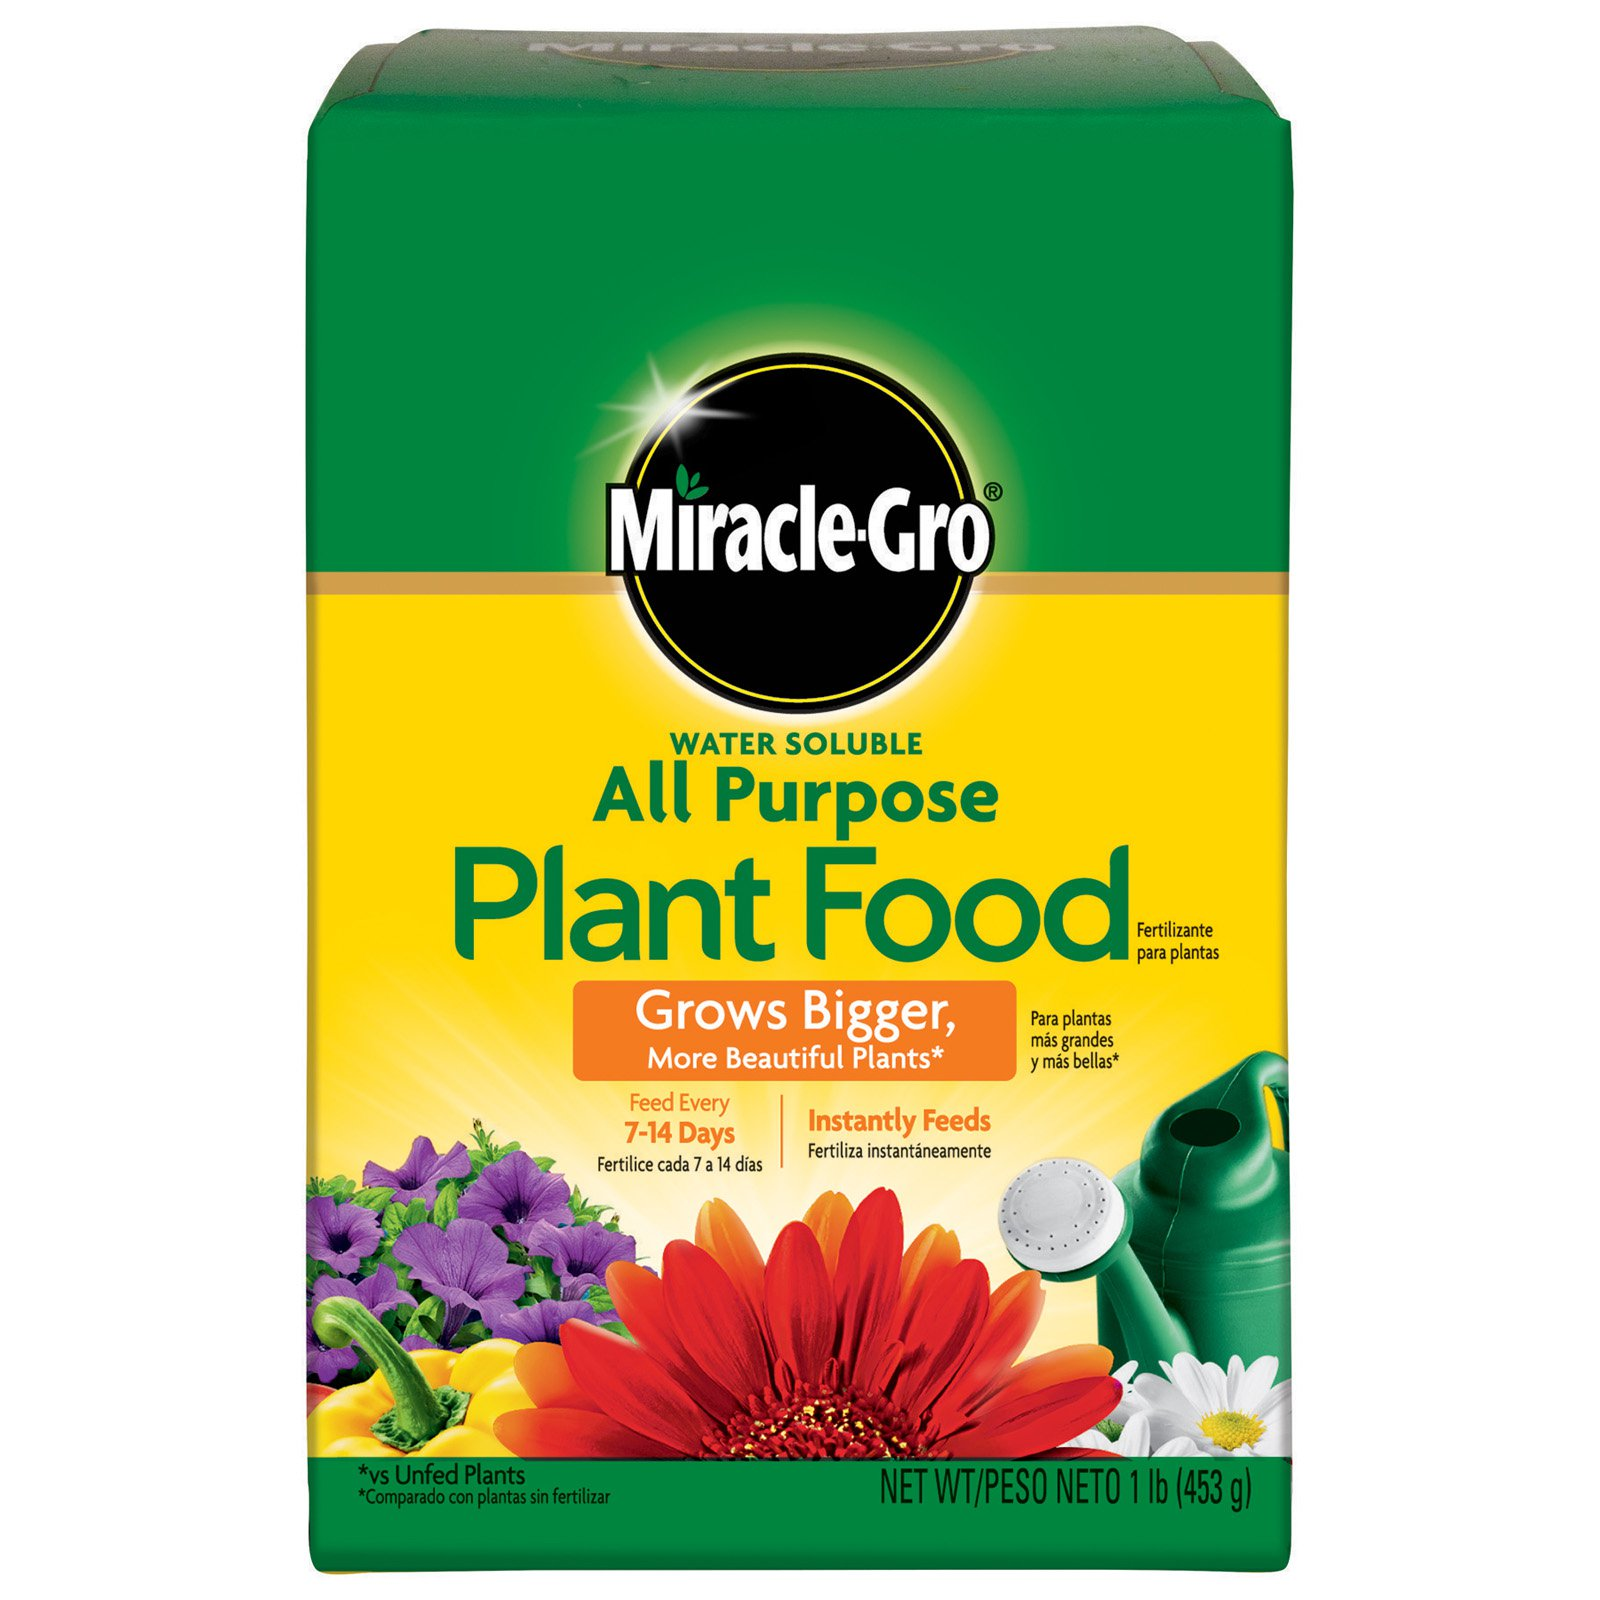 Miracle Gro Water Soluble All Purpose Plant Food